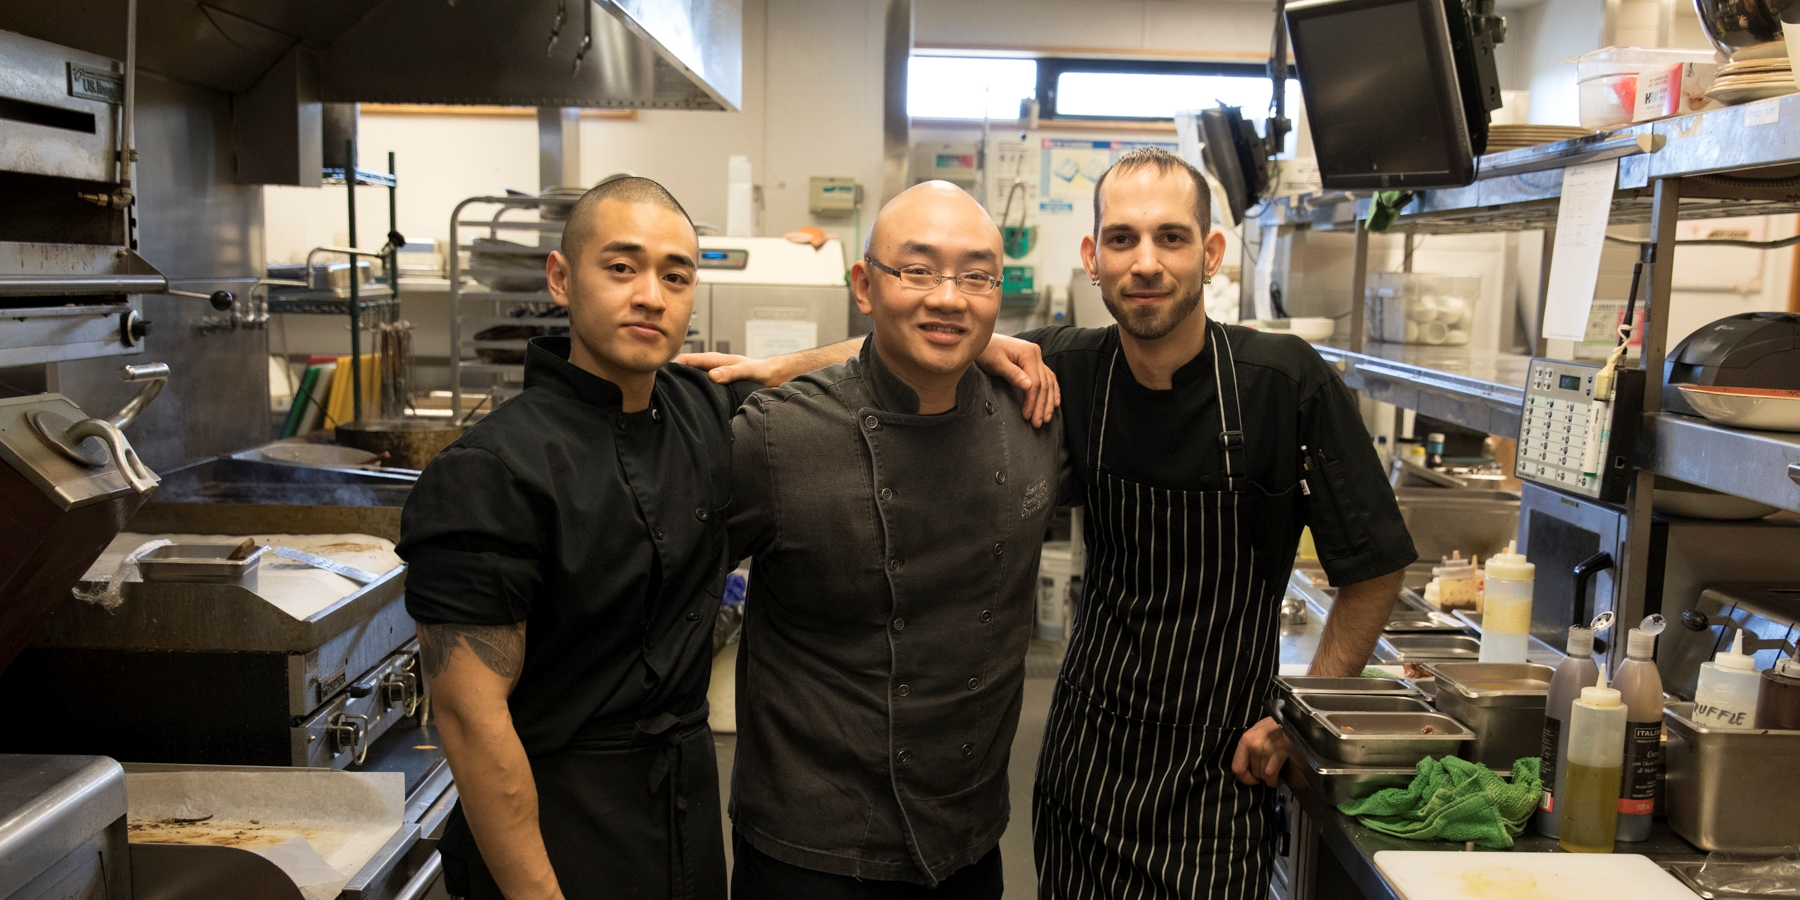 Danzen, Jason, and Joe at the Riverway restaurant kitchen